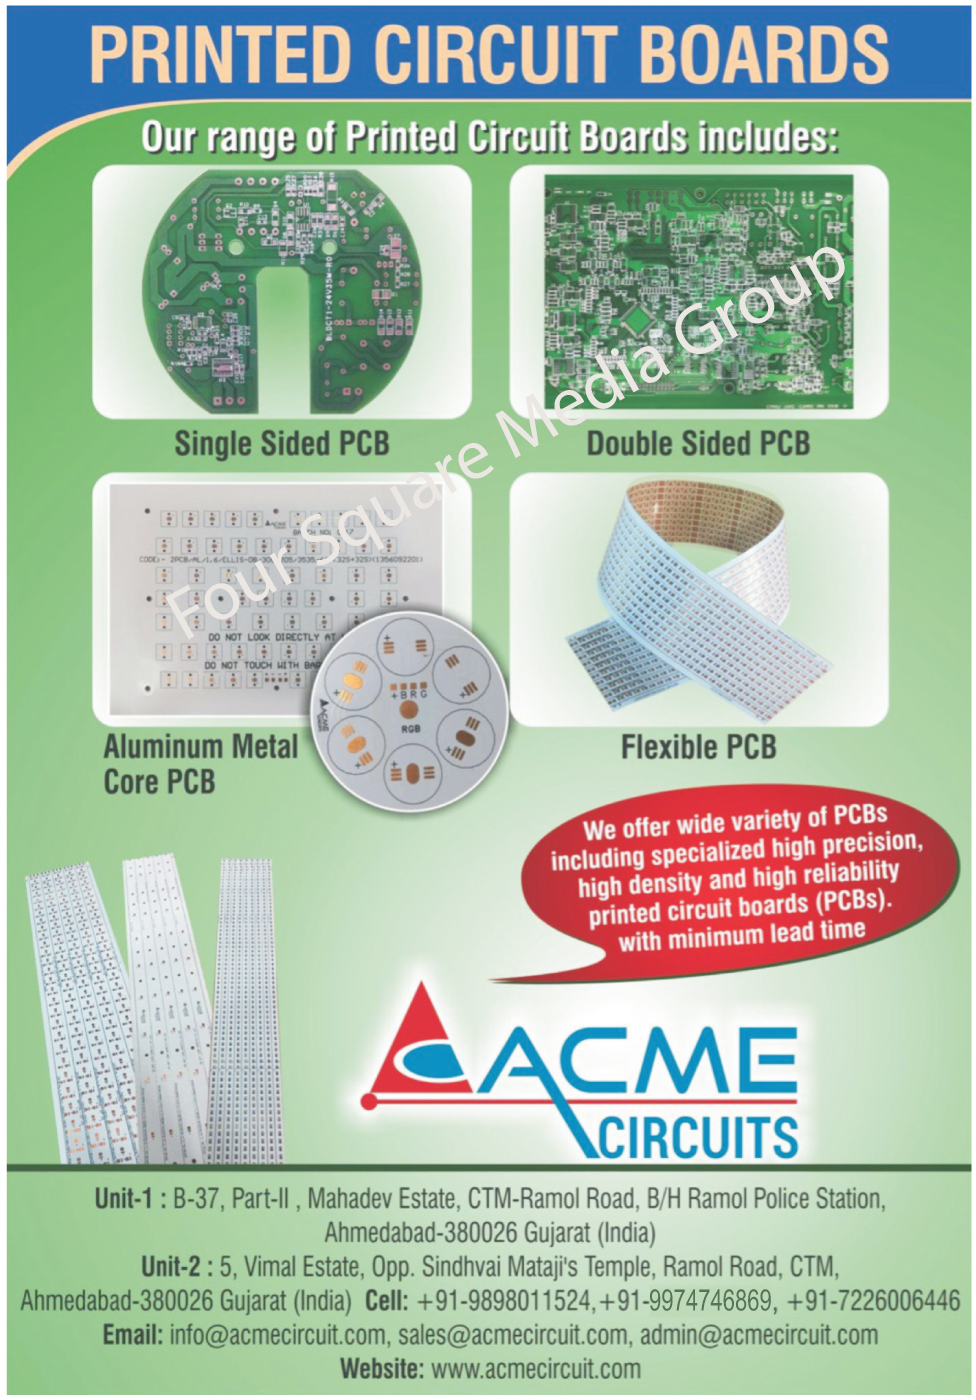 Single Layer Printed Circuit Boards, Single Layer PCB, Double Layer PCB, Double Layer Printed Circuit Boards, Multi Layer Printed Circuit Boards, Multi Layer PCB, Aluminium Clad Printed Circuit Boards, Aluminium Clad PCB, Down Light Fixture, Street Light Fixtures, Led Drivers, Street Light Printed Circuit Boards, Street Light PCB, LED PCB, Led Printed Circuit Boards, LED Assembly, Led Assemblies, PCB, Printed Circuit Boards, Aluminium Metal Core PCB, Aluminium Metal Core Printed Circuit Boards, Flexible PCB, Flexible Printed Circuit Boards, Single Sided Printed Circuit Boards, Single Sided PCB, Double Sided PCB, Double Sided Printed Circuit Boards